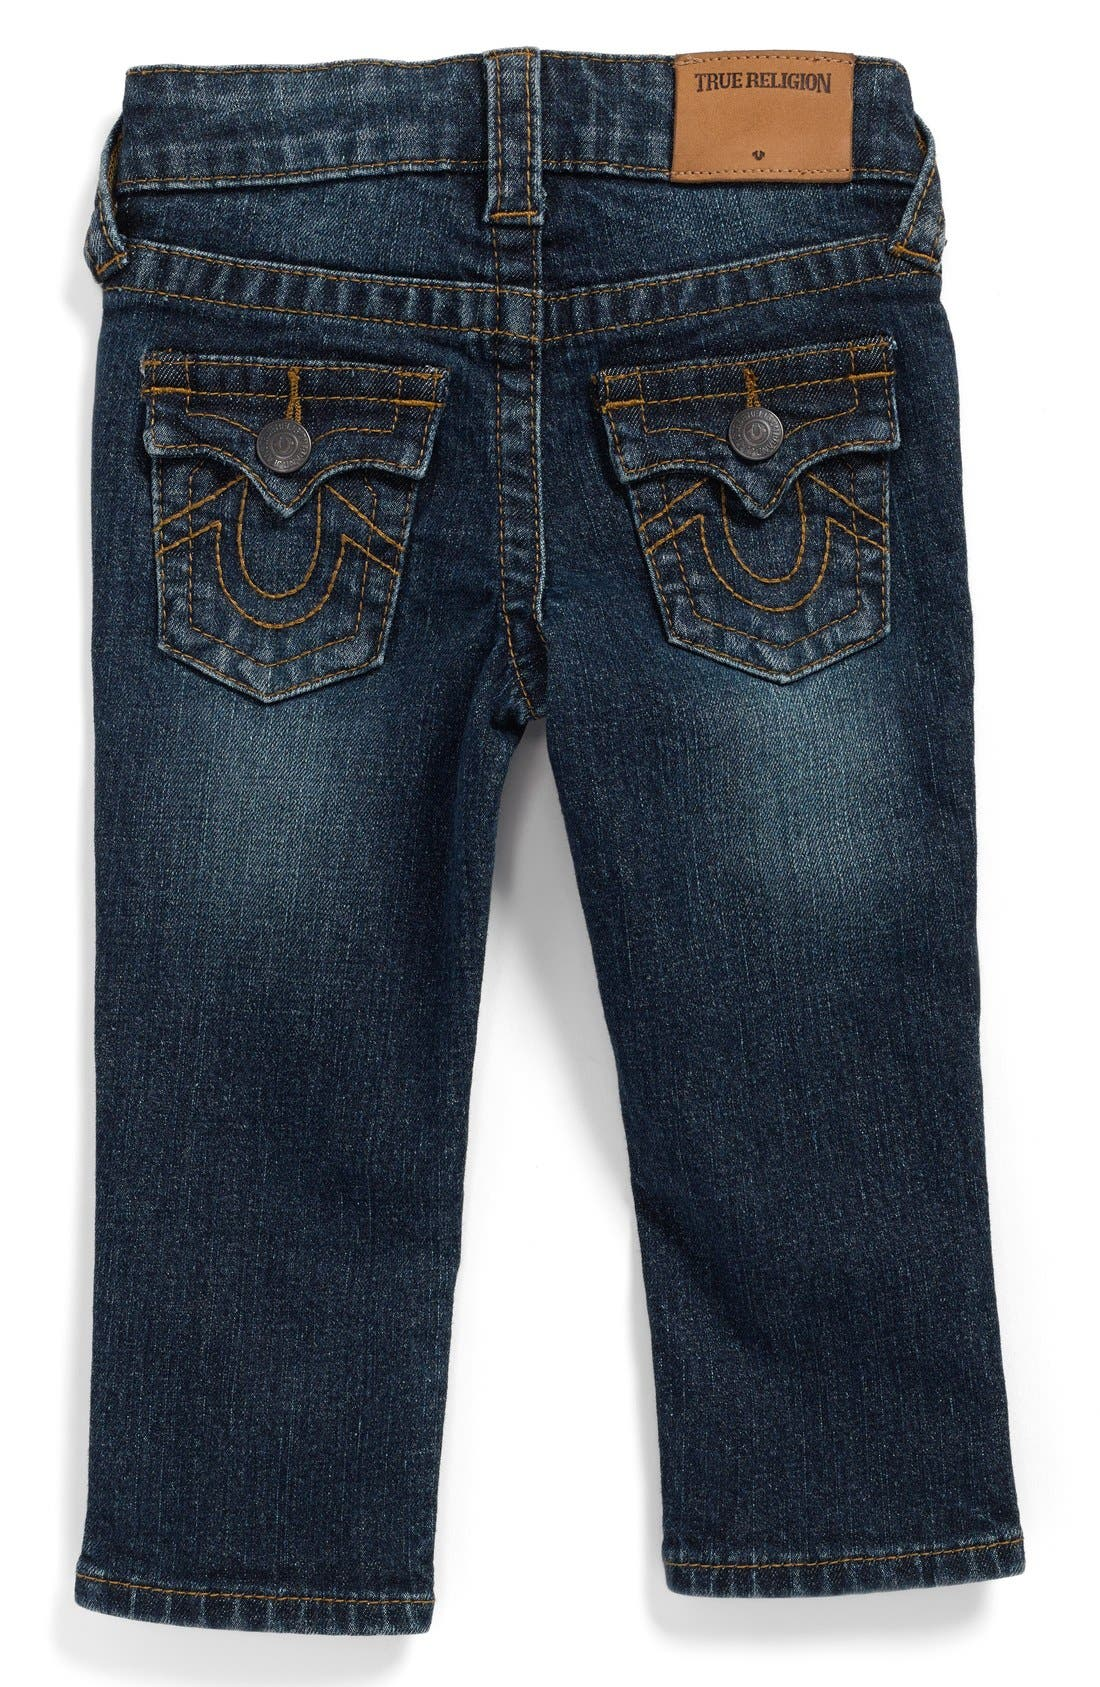 'Geno' Relaxed Slim Fit Classic Jeans,                             Alternate thumbnail 2, color,                             Indigo Blast